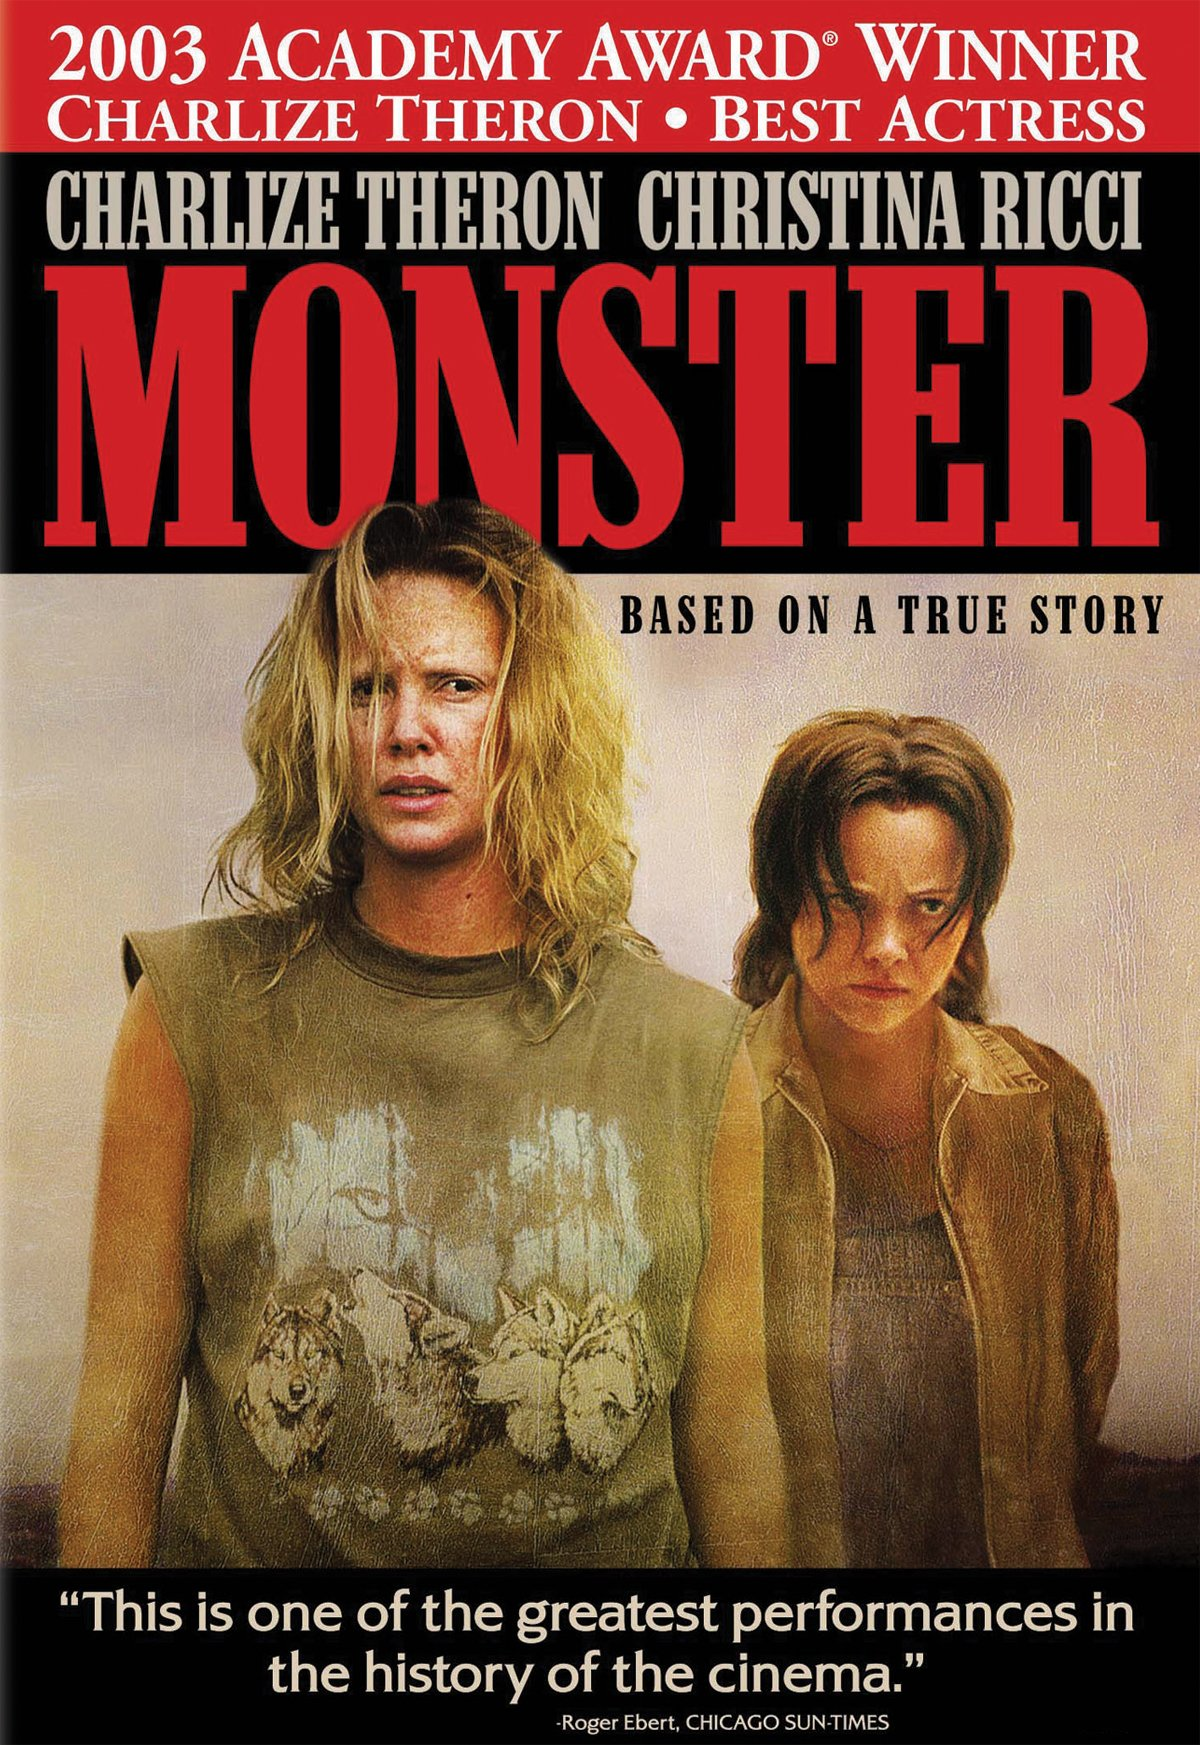 watch monster charlize theron online free